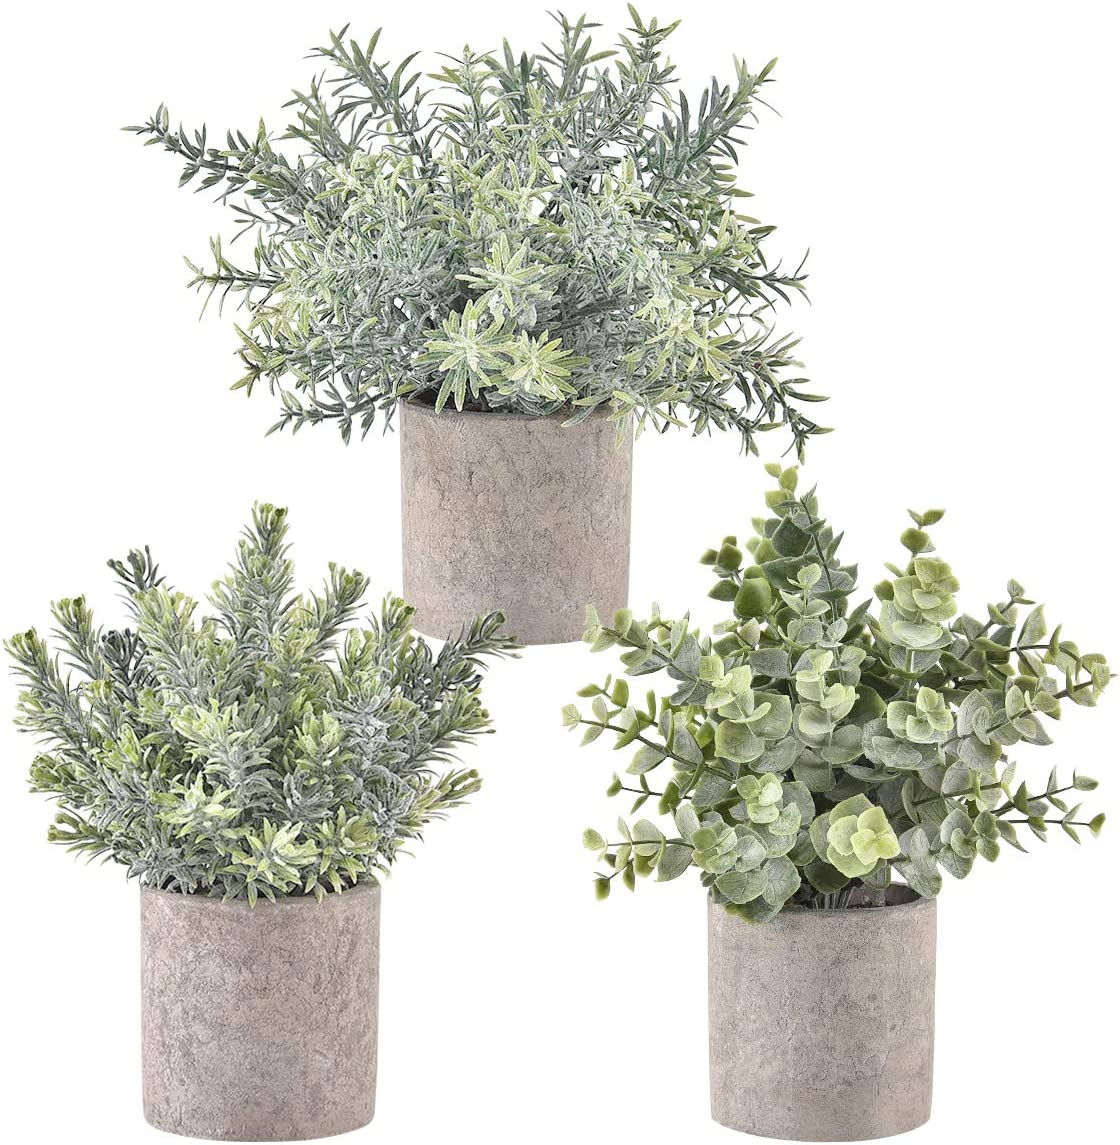 Artflower Set of 3 Artificial Potted Plants Fake Potted Eucalyptus Rosemary Plastic Decoration for Table Centerpiece Office Kitchen Shower Room